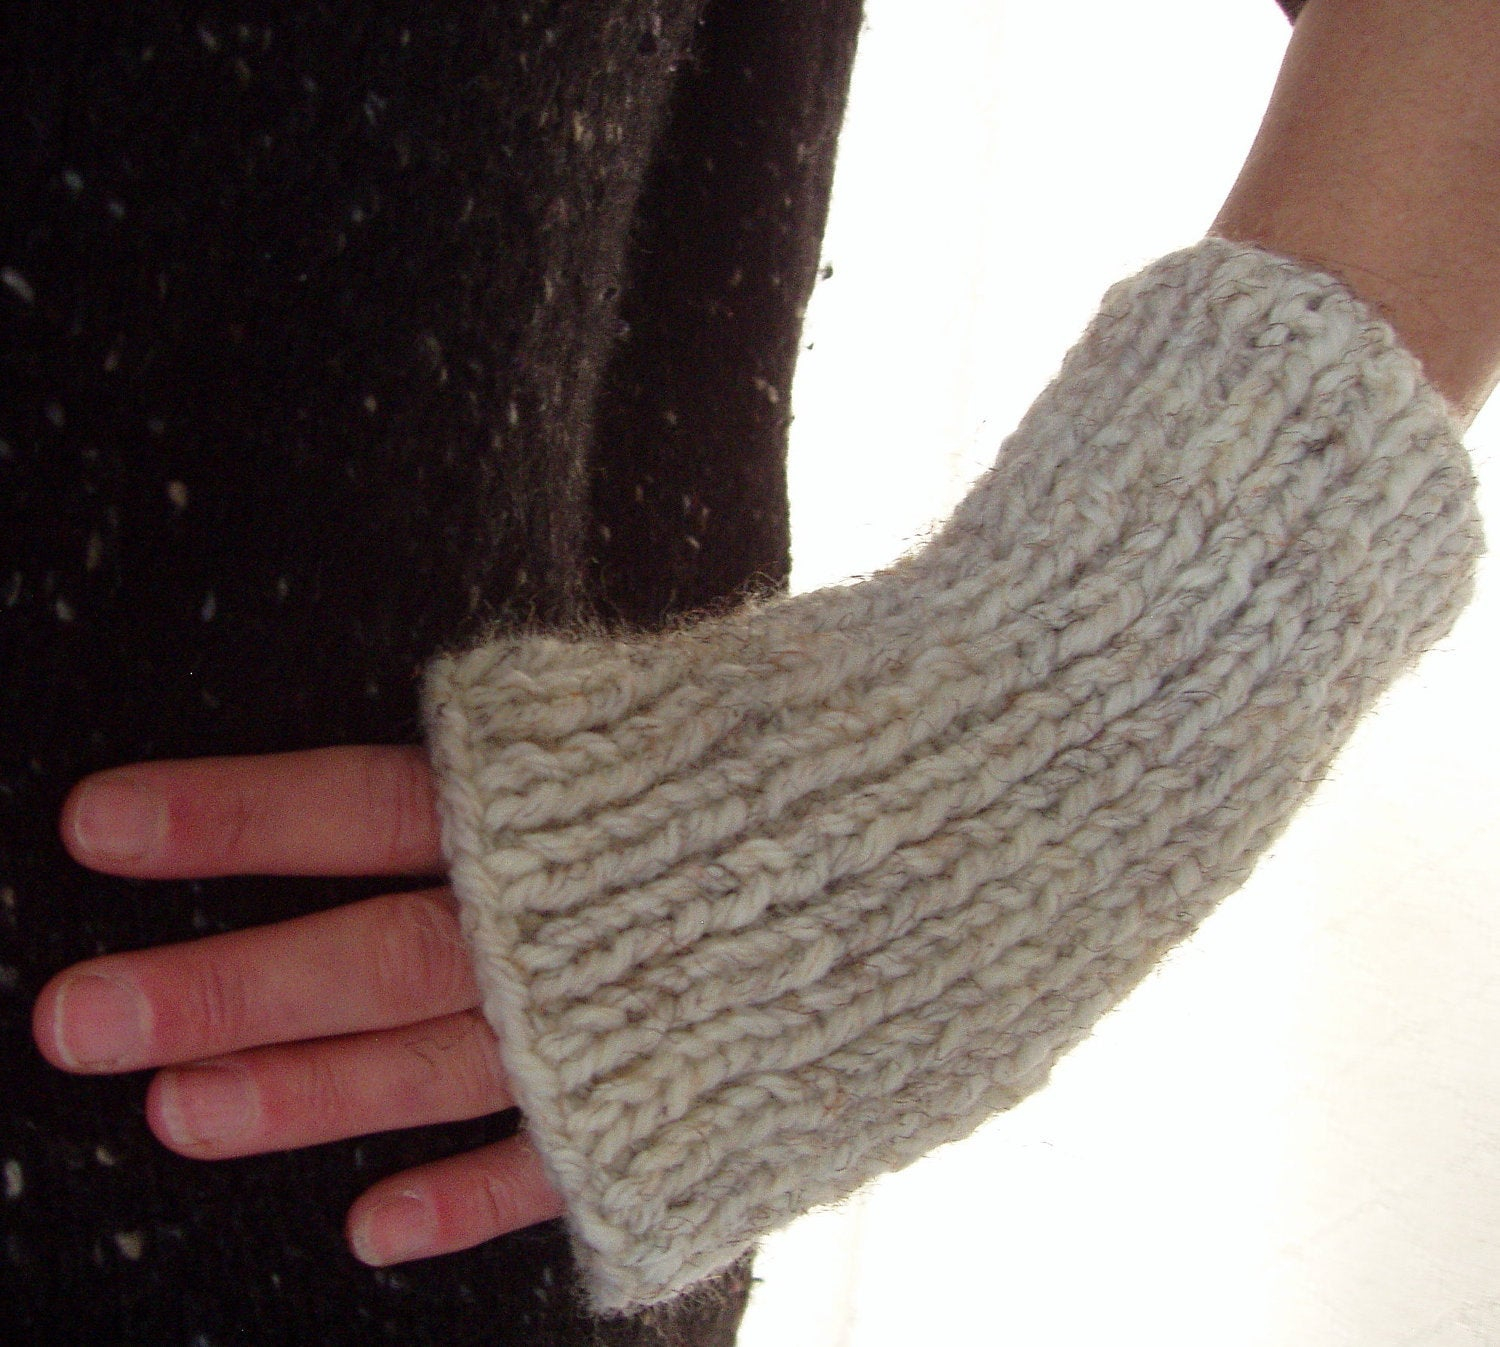 Mens Fingerless Gloves Knitting Pattern Quick Knit Gloves Mens Fingerless Gloves Knitting Pattern Easy Woolen Glove Simple Chunky Knit Gloves Gift For Men Father Giftdara Gloves